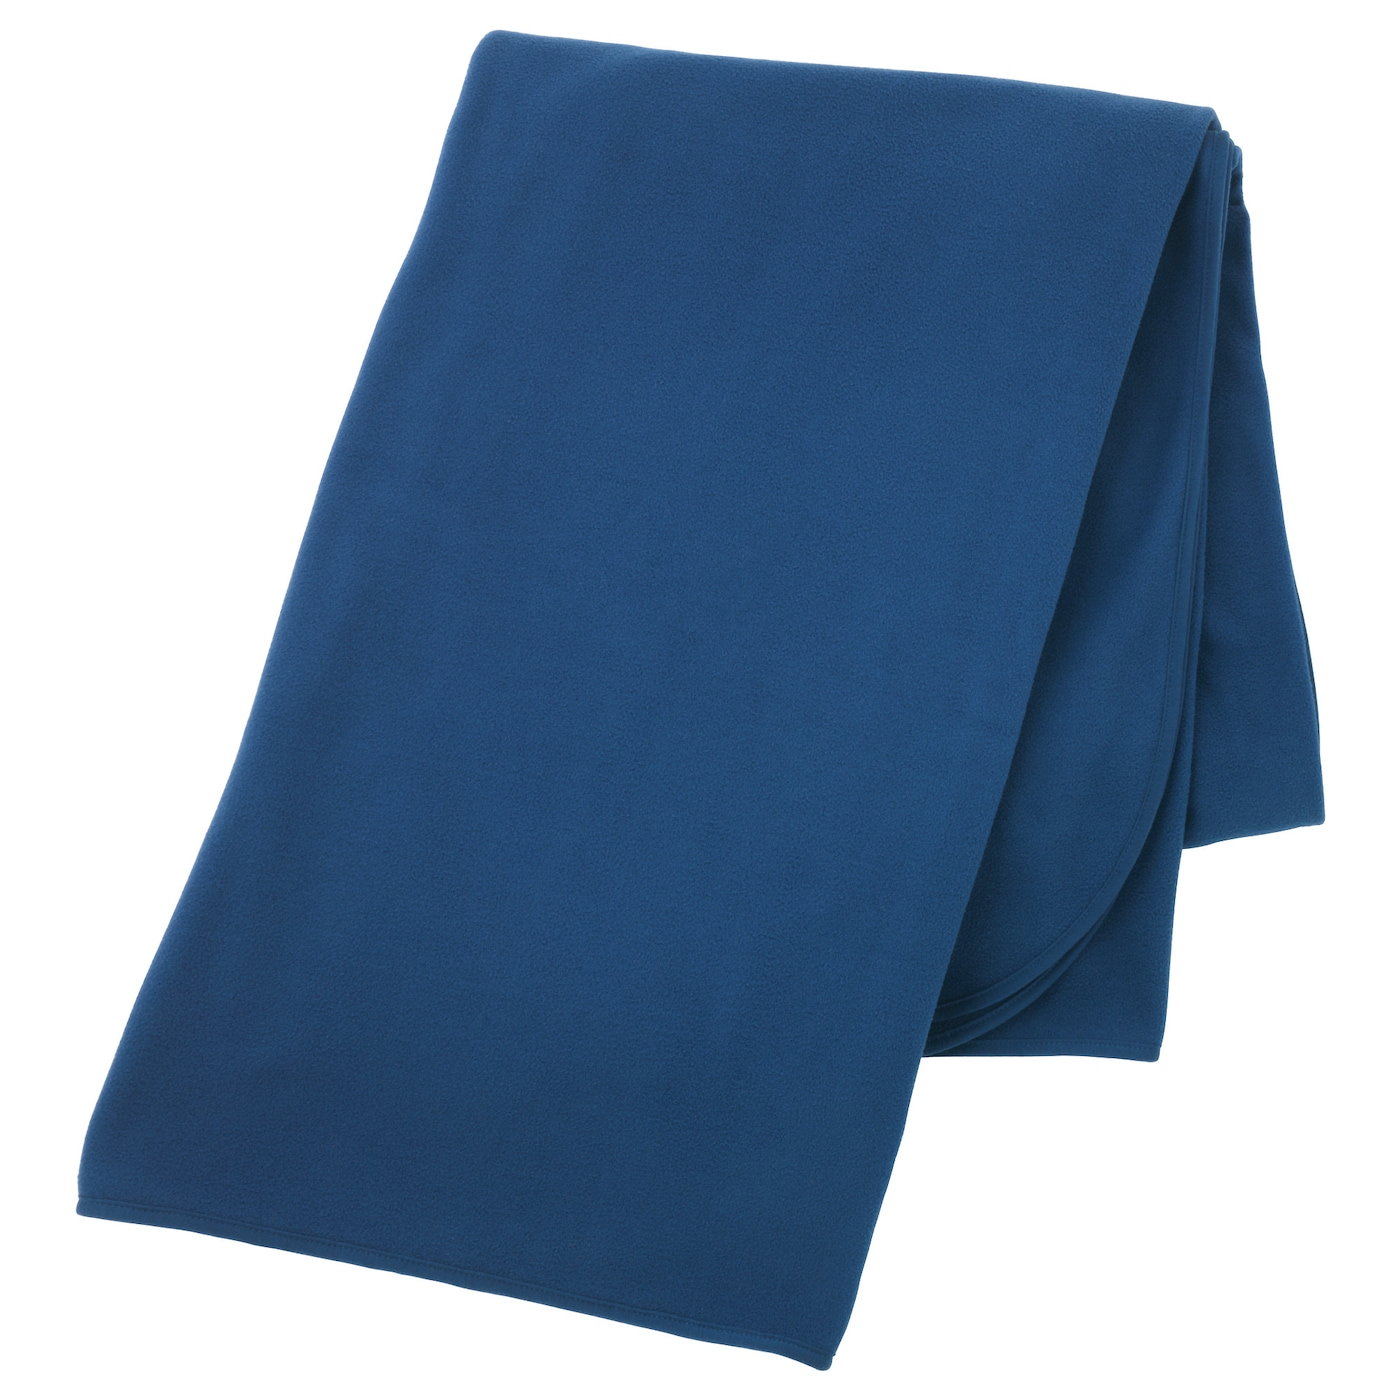 IKEA SKOGSKLOCKA throw The fleece throw feels soft against your skin and can be machine washed.